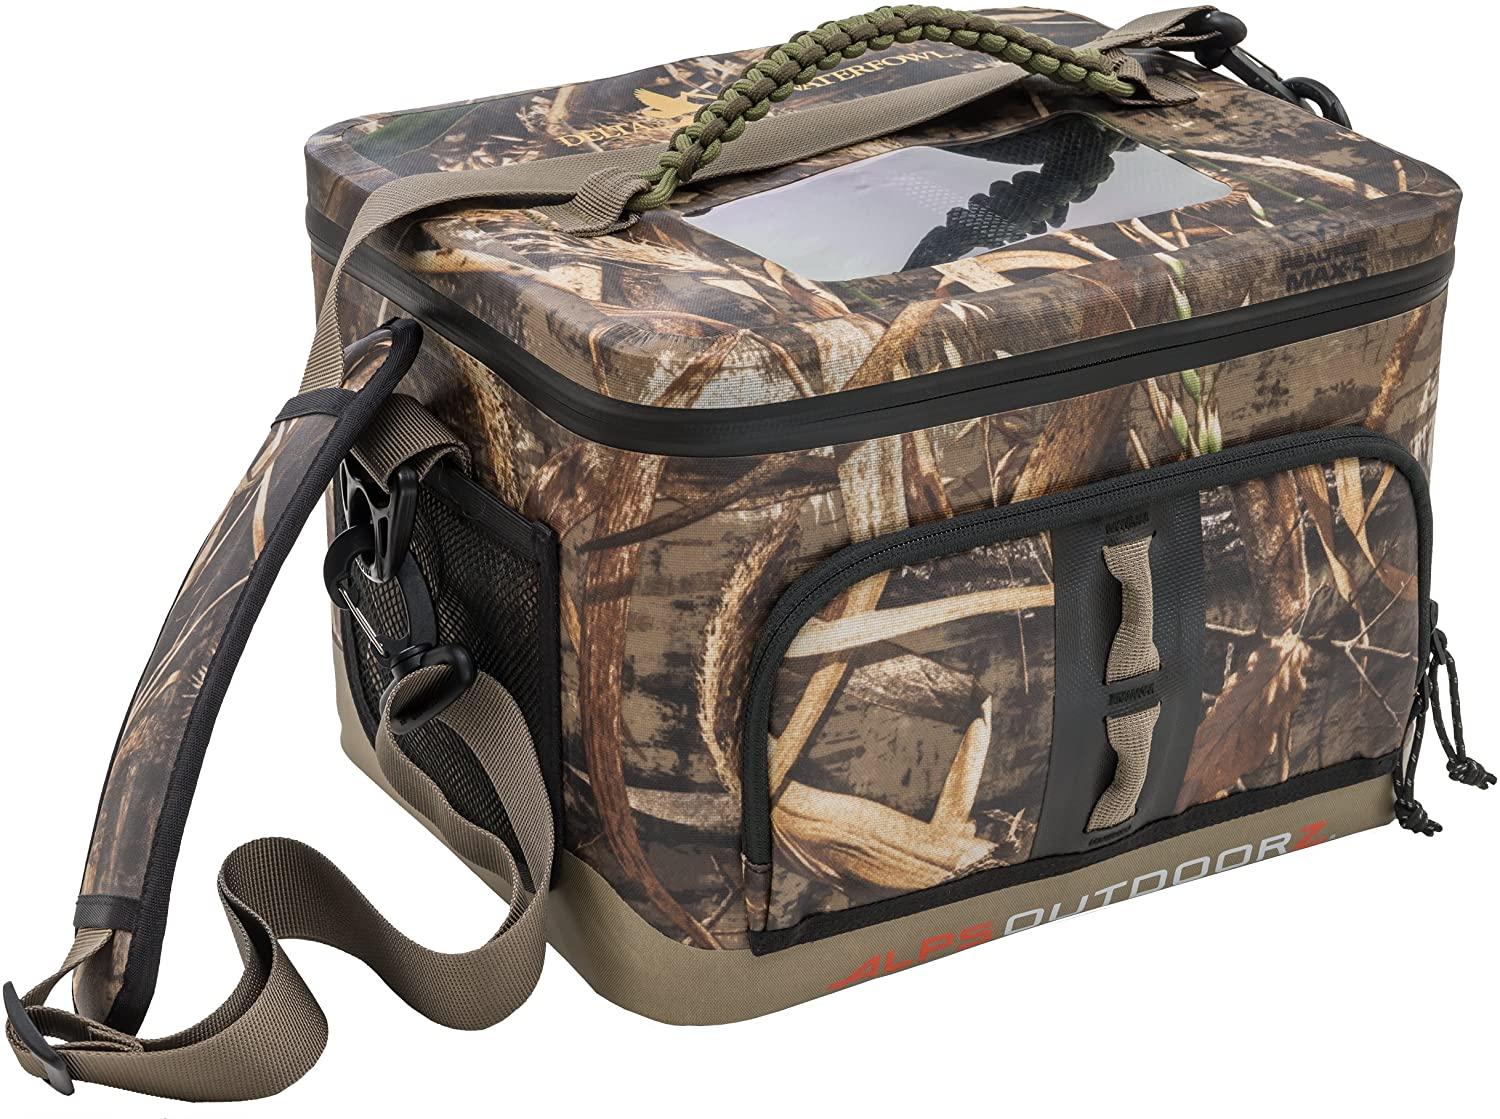 ALPS OutdoorZ Delta Waterfowl Water-Shield Blind Bag, Realtree MAX-5